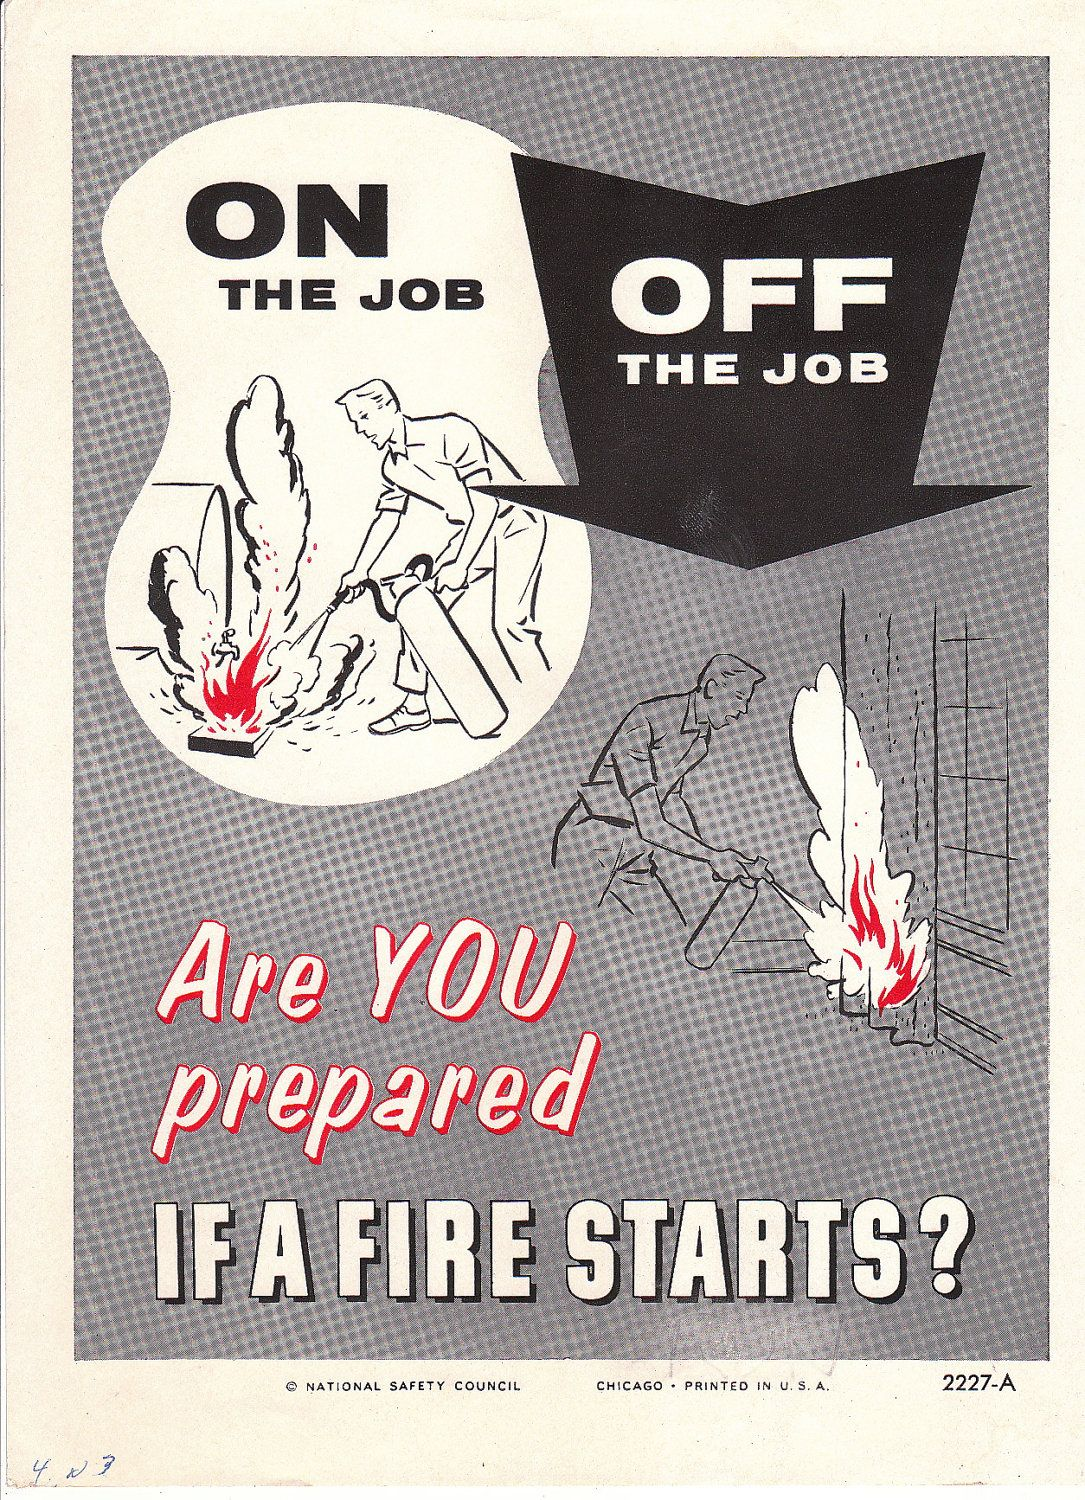 Collectable Vintage National Safety Poster On The Job Off The Job